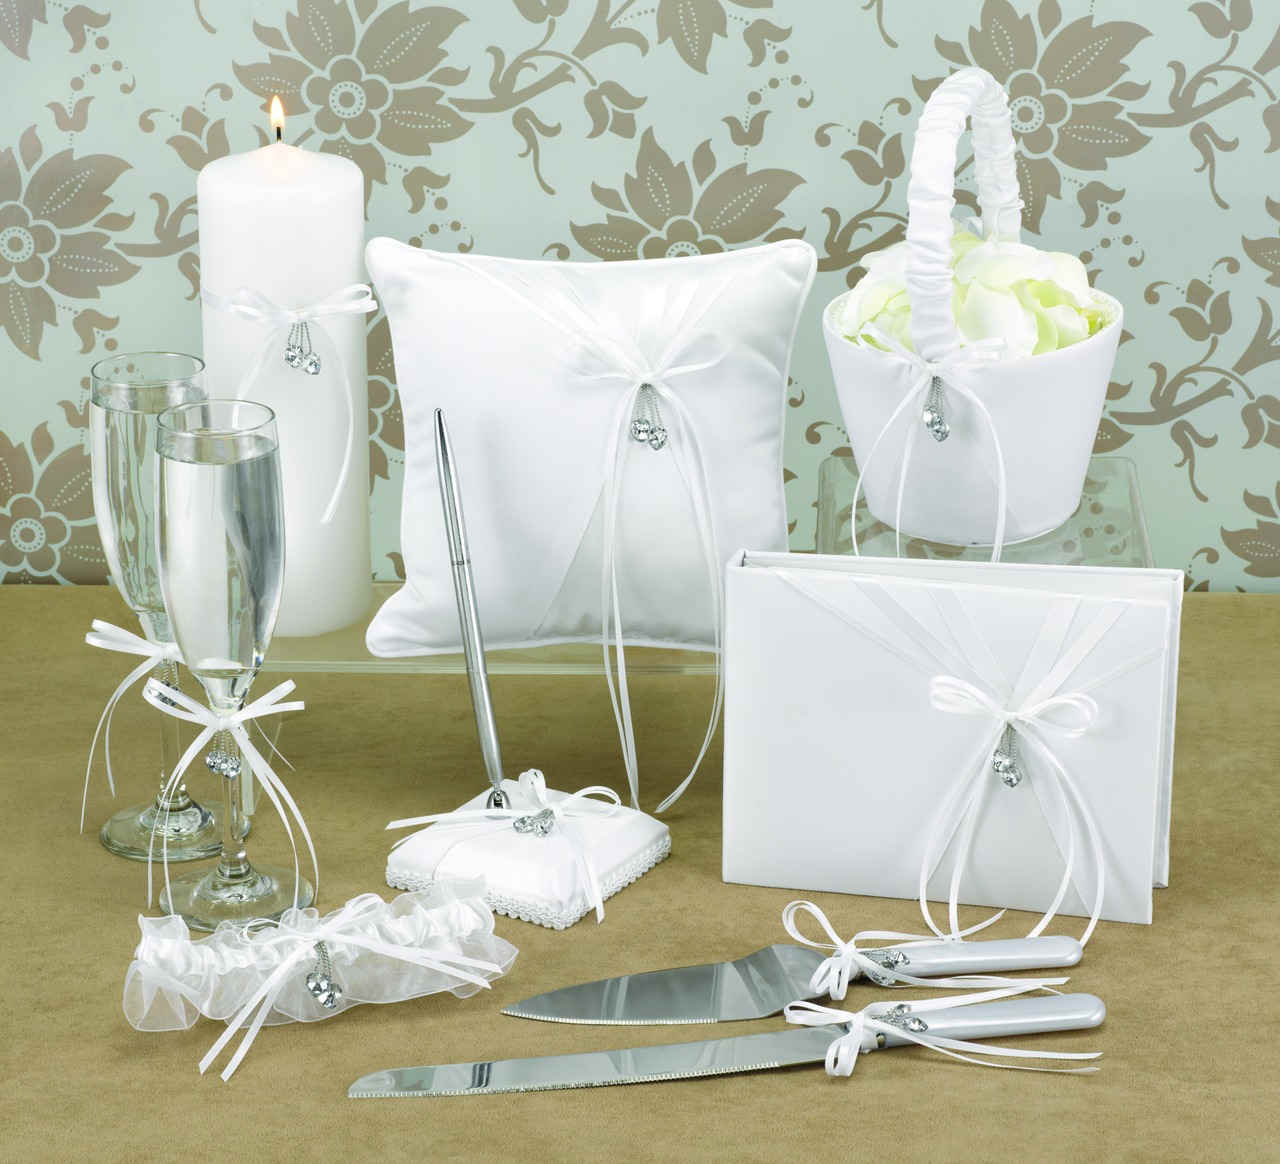 Wedding supplies romantic decoration up wedding supplies at the 10 reasons to shop sams club cakes for your wedding junglespirit